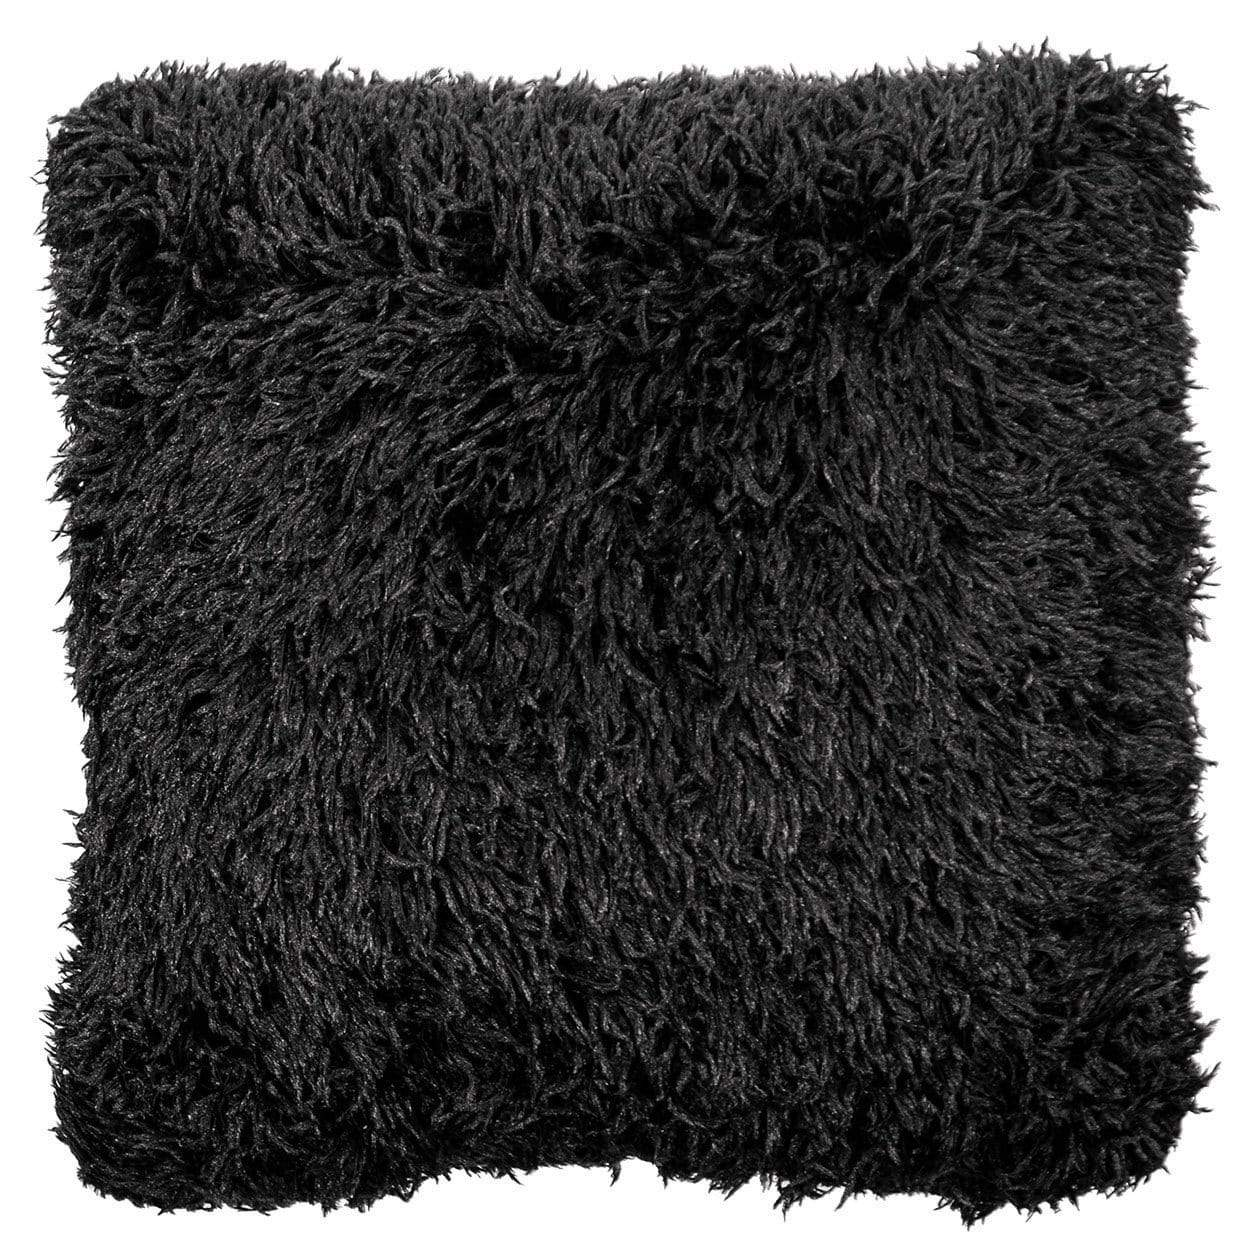 "Pandemonium Millinery Pillow Sham - Black Swan Faux Fur 16"" Square / Add Pillow Form / Black Swan Home decor"